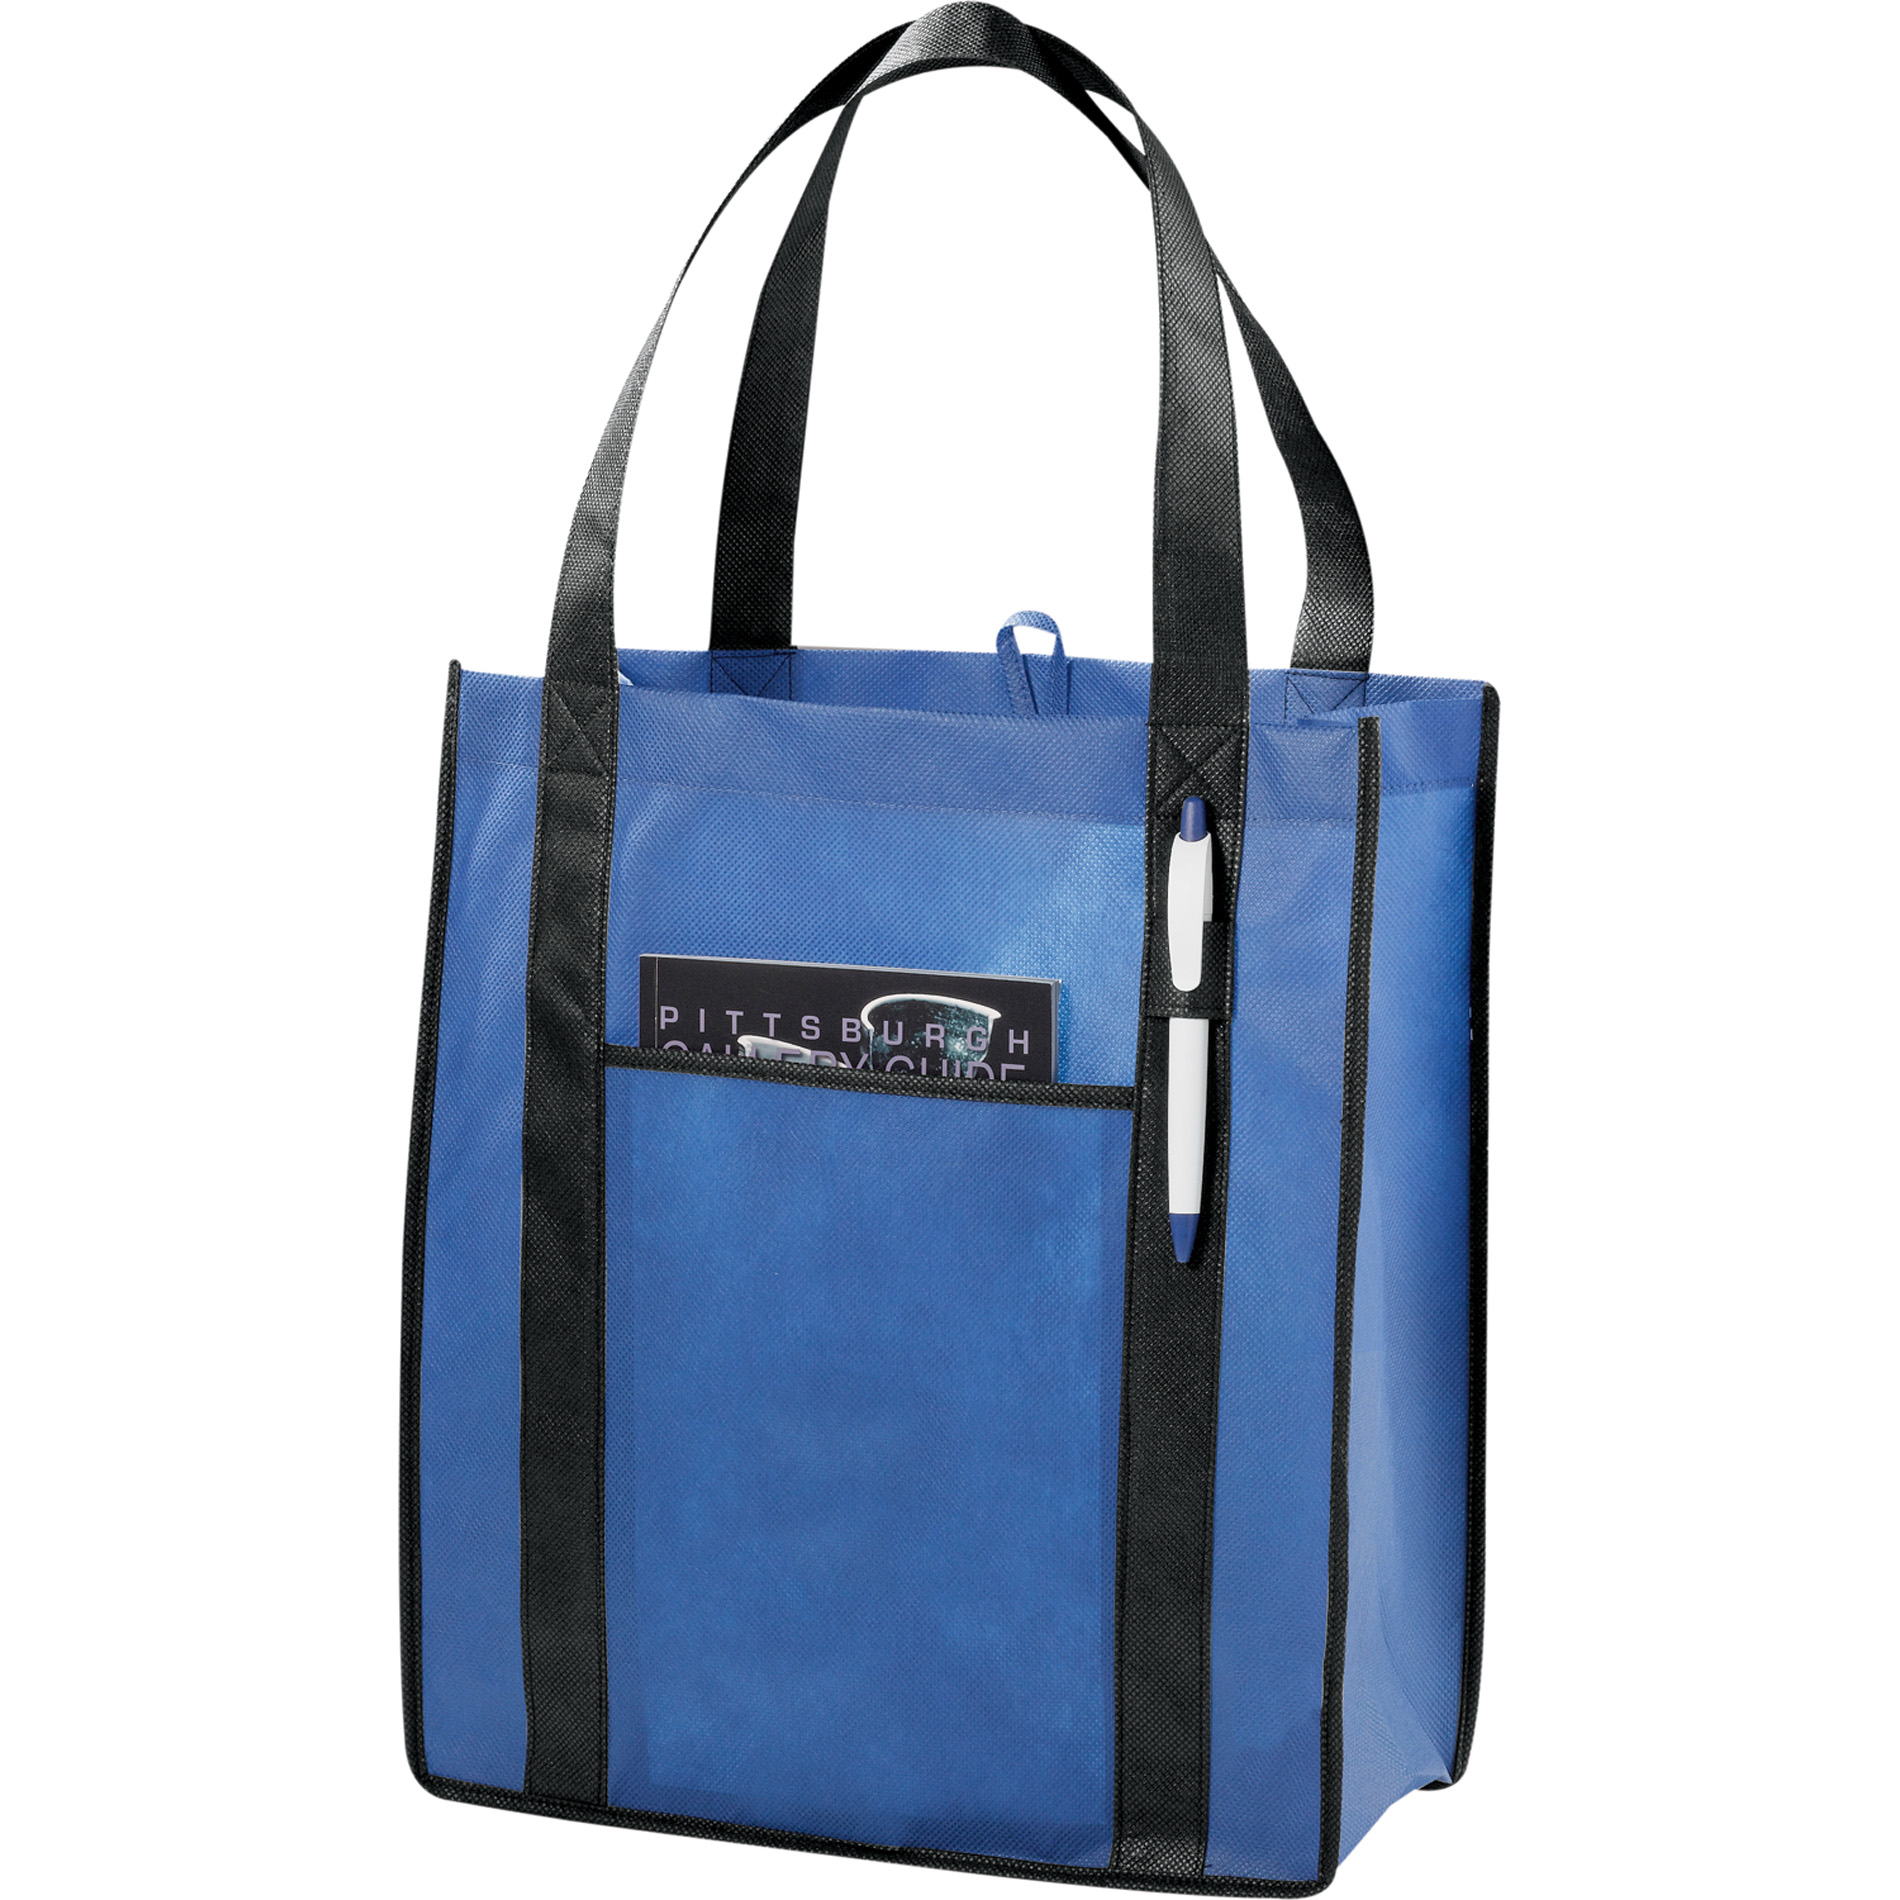 LEEDS 2150-44 - Contrast Non-Woven Carry-All Tote